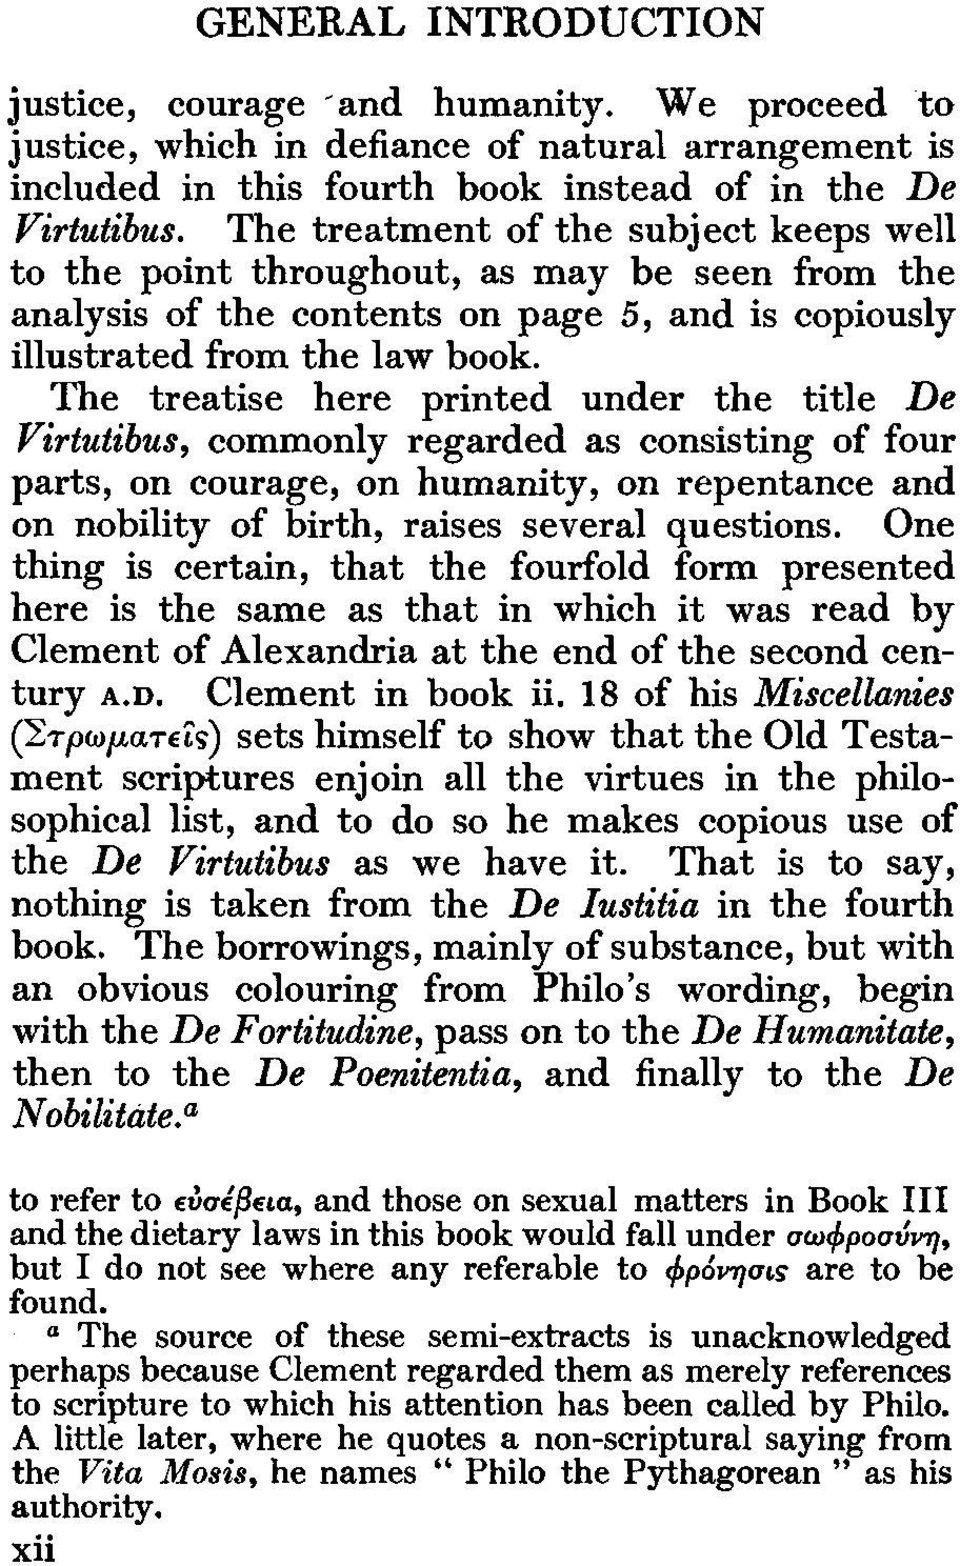 The treatise here printed under the title De Virtutibus, commonly regarded as consisting of four parts, on courage, on humanity, on repentance and on nobility of birth, raises several questions.